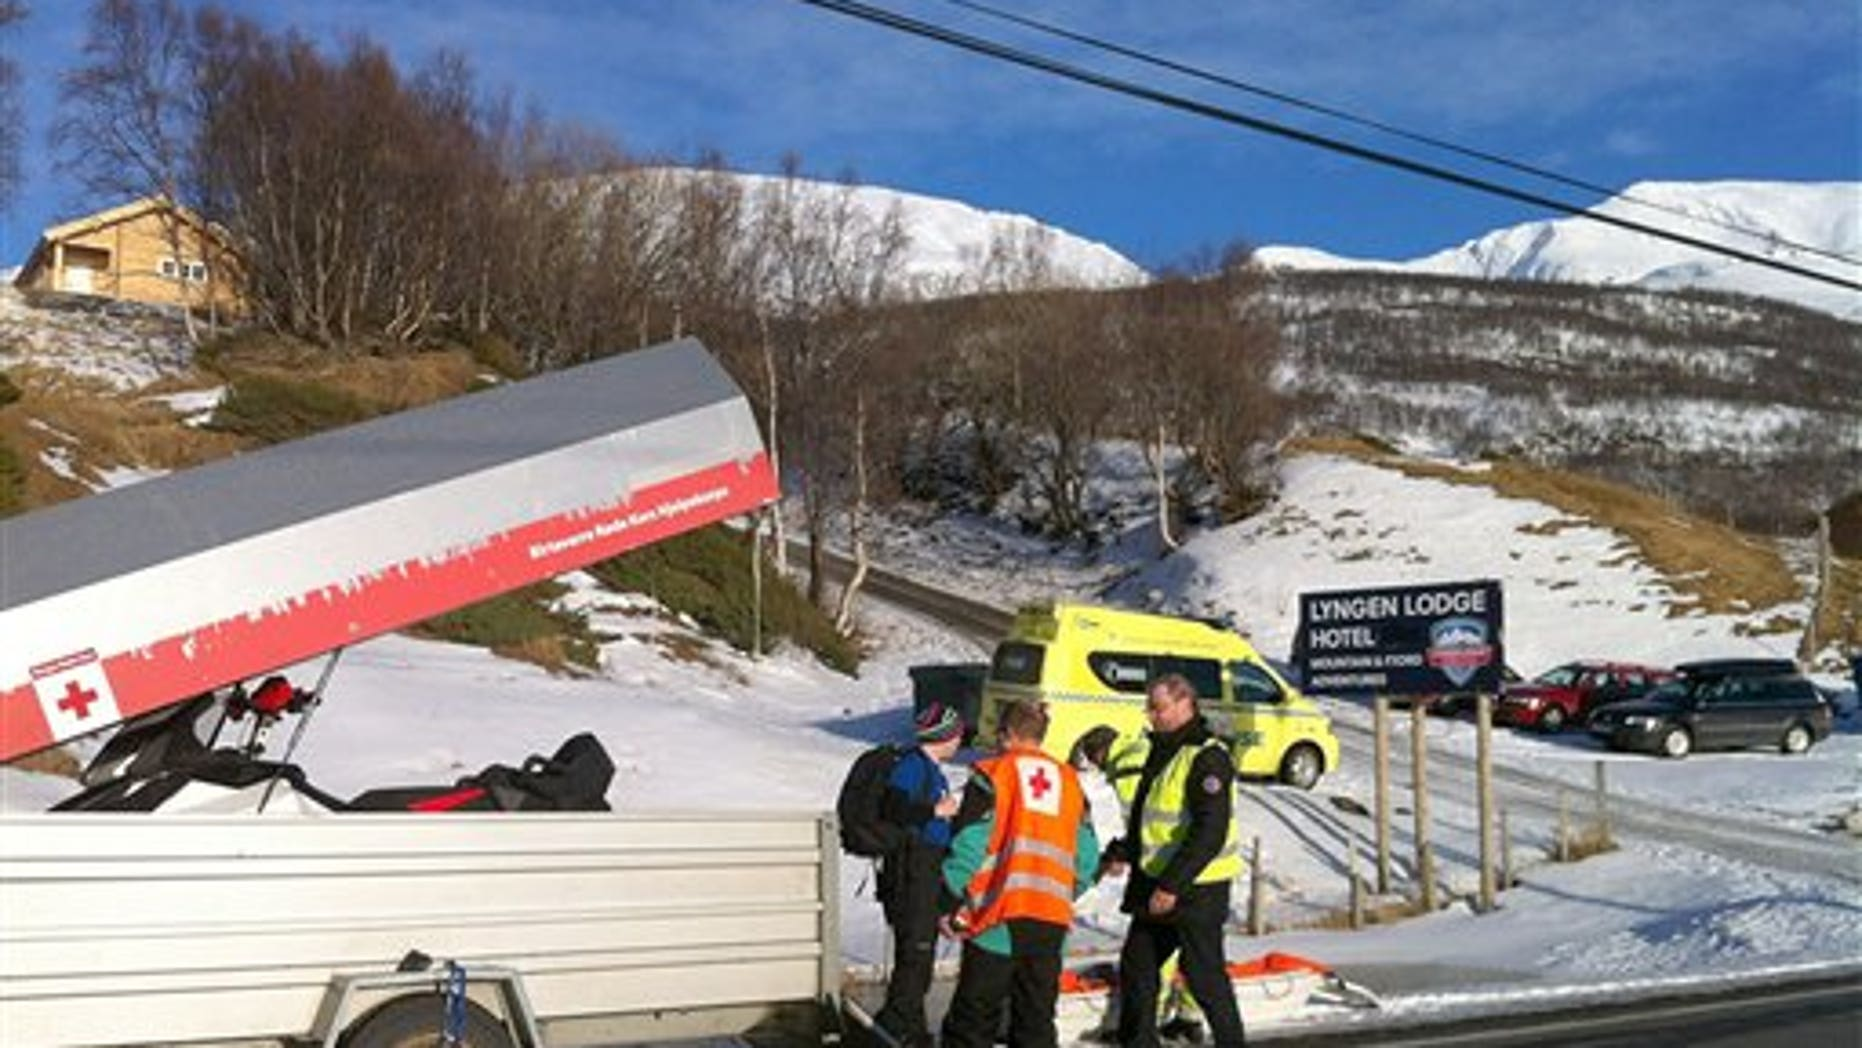 March 19: Rescue personnel prepare to go to the mountain area near Kafjord, Norway where an avalanche is reported to have buried six tourists.